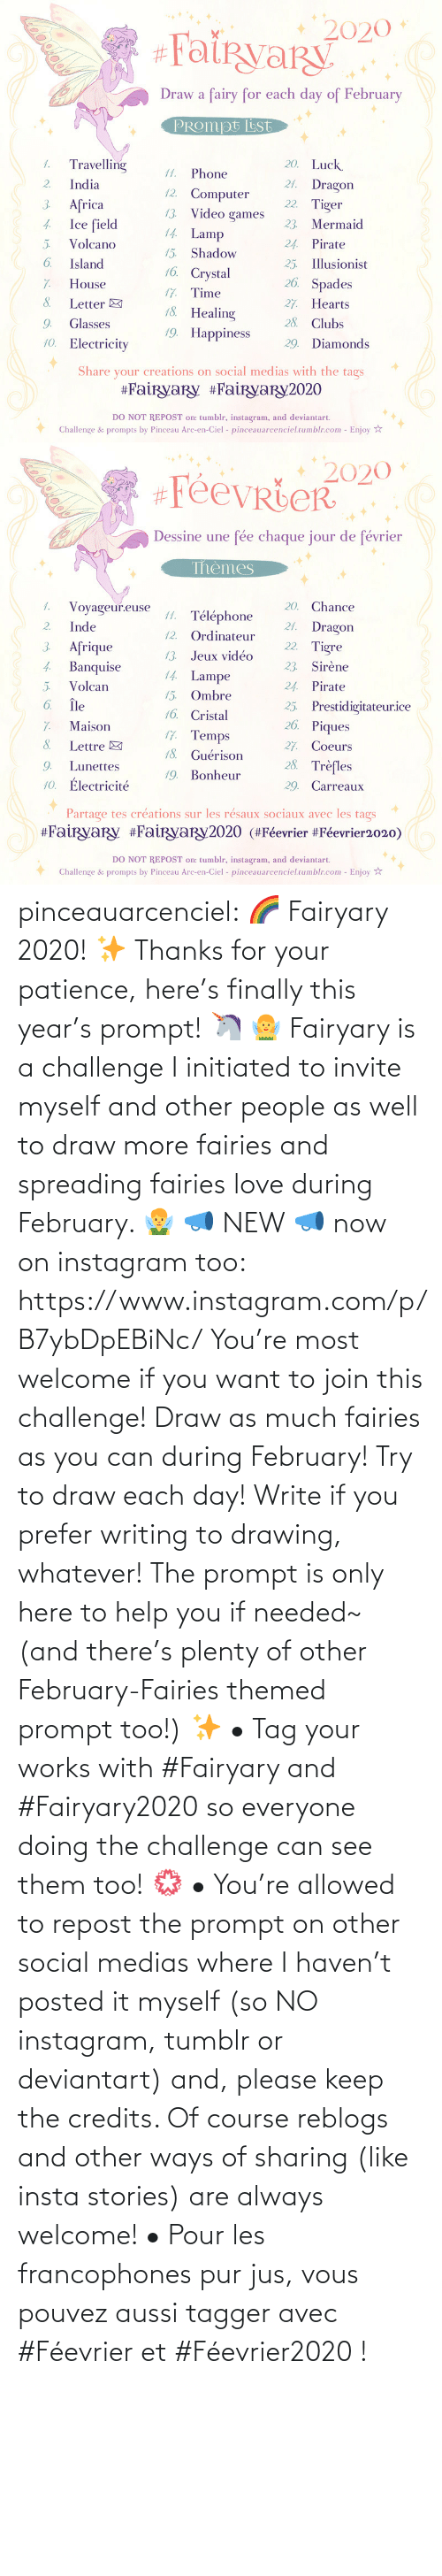 Patience: pinceauarcenciel: 🌈 Fairyary 2020! ✨ Thanks for your patience, here's finally this year's prompt! 🦄 🧚‍♀️ Fairyary is a challenge I initiated to invite myself and other people as well to draw more fairies and spreading fairies love during February. 🧚‍♂️ 📣 NEW 📣 now on instagram too: https://www.instagram.com/p/B7ybDpEBiNc/ You're most welcome if you want to join this challenge! Draw as much fairies as you can during February! Try to draw each day! Write if you prefer writing to drawing, whatever! The prompt is only here to help you if needed~ (and there's plenty of other February-Fairies themed prompt too!) ✨ • Tag your works with #Fairyary and #Fairyary2020 so everyone doing the challenge can see them too! 💮 • You're allowed to repost the prompt on other social medias where I haven't posted it myself (so NO instagram, tumblr or deviantart) and, please keep the credits. Of course reblogs and other ways of sharing (like insta stories) are always welcome!